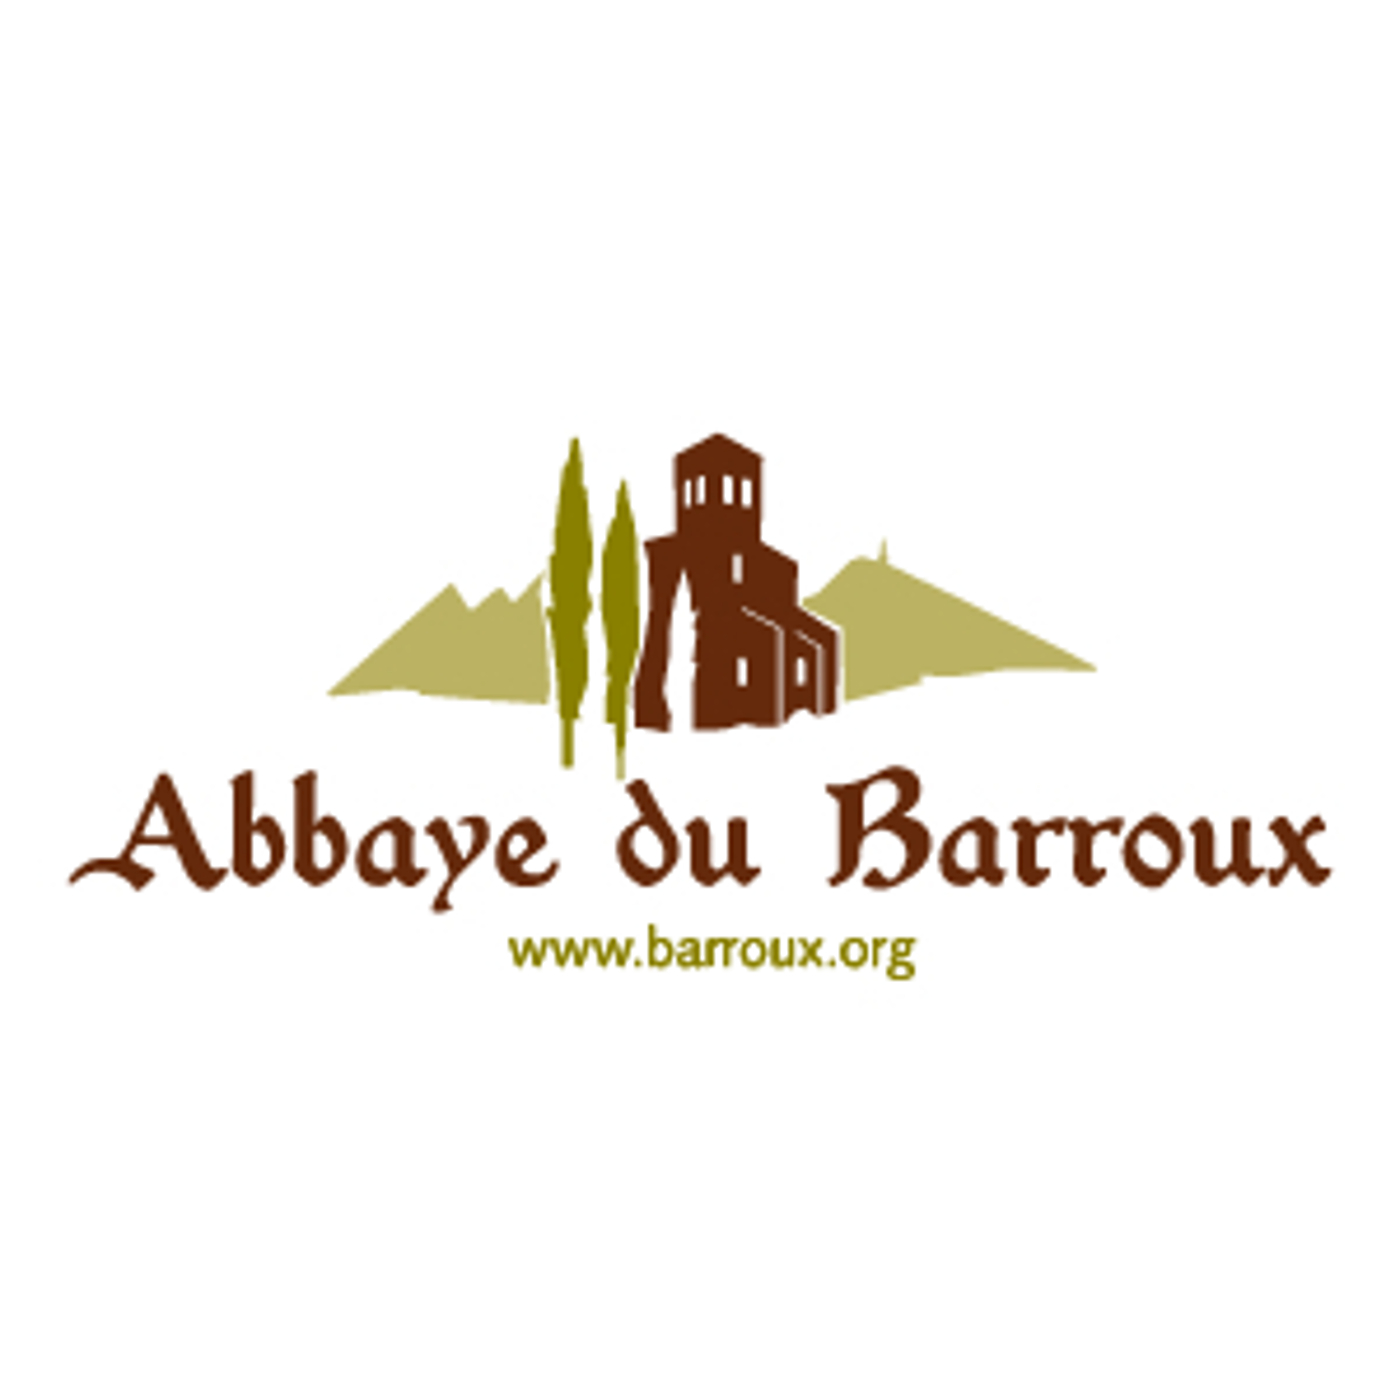 The Chant of Le Barroux